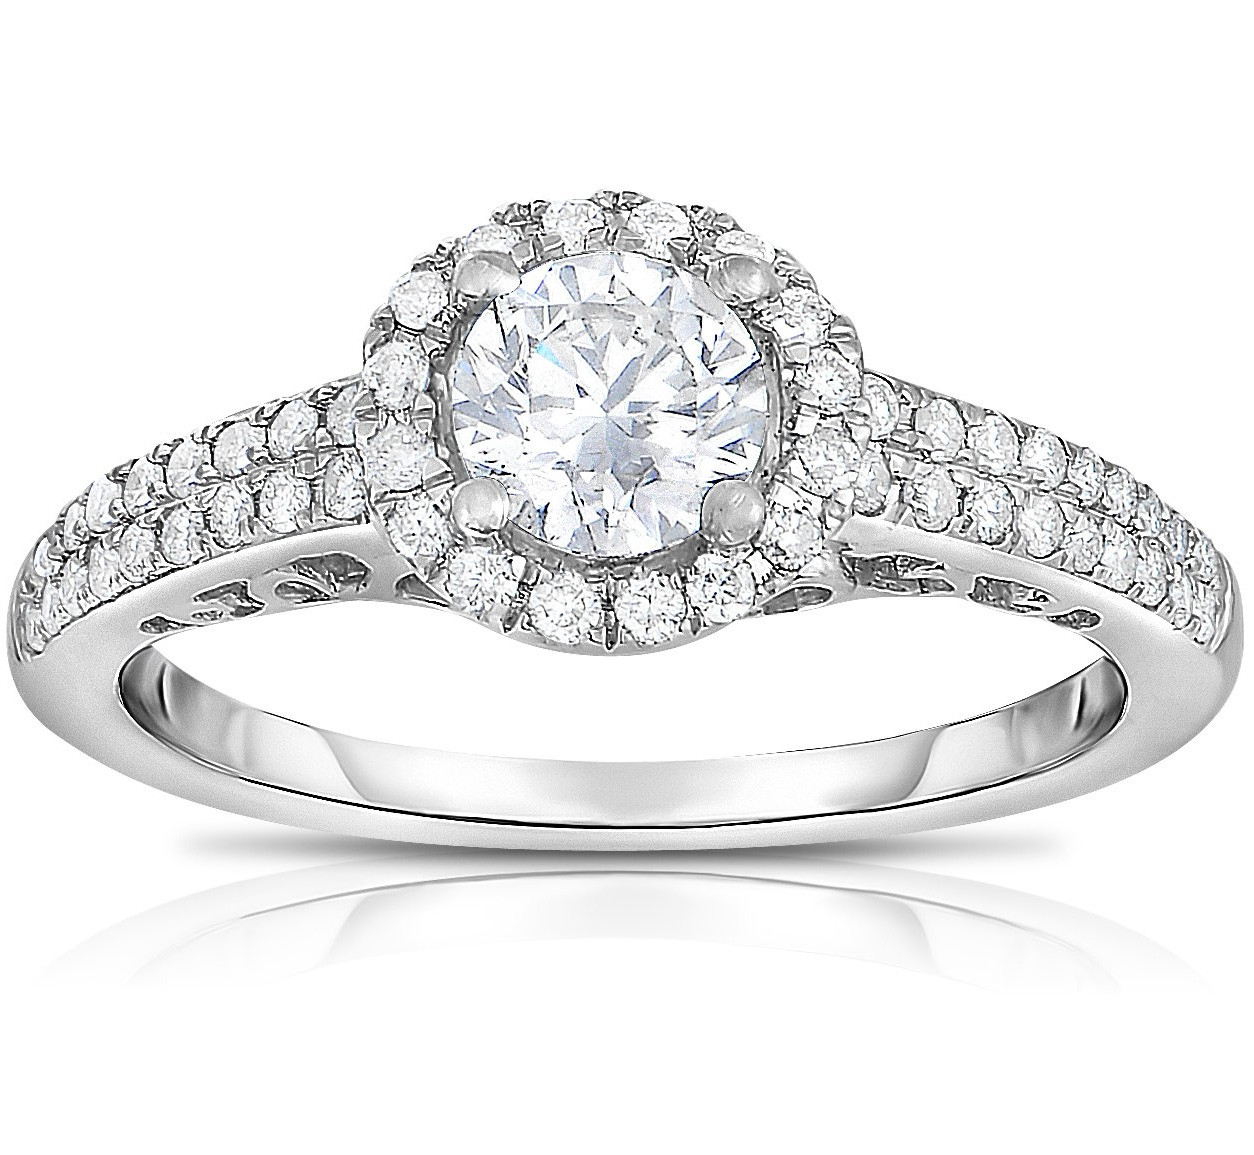 1 carat round halo two row diamond engagement ring for her in